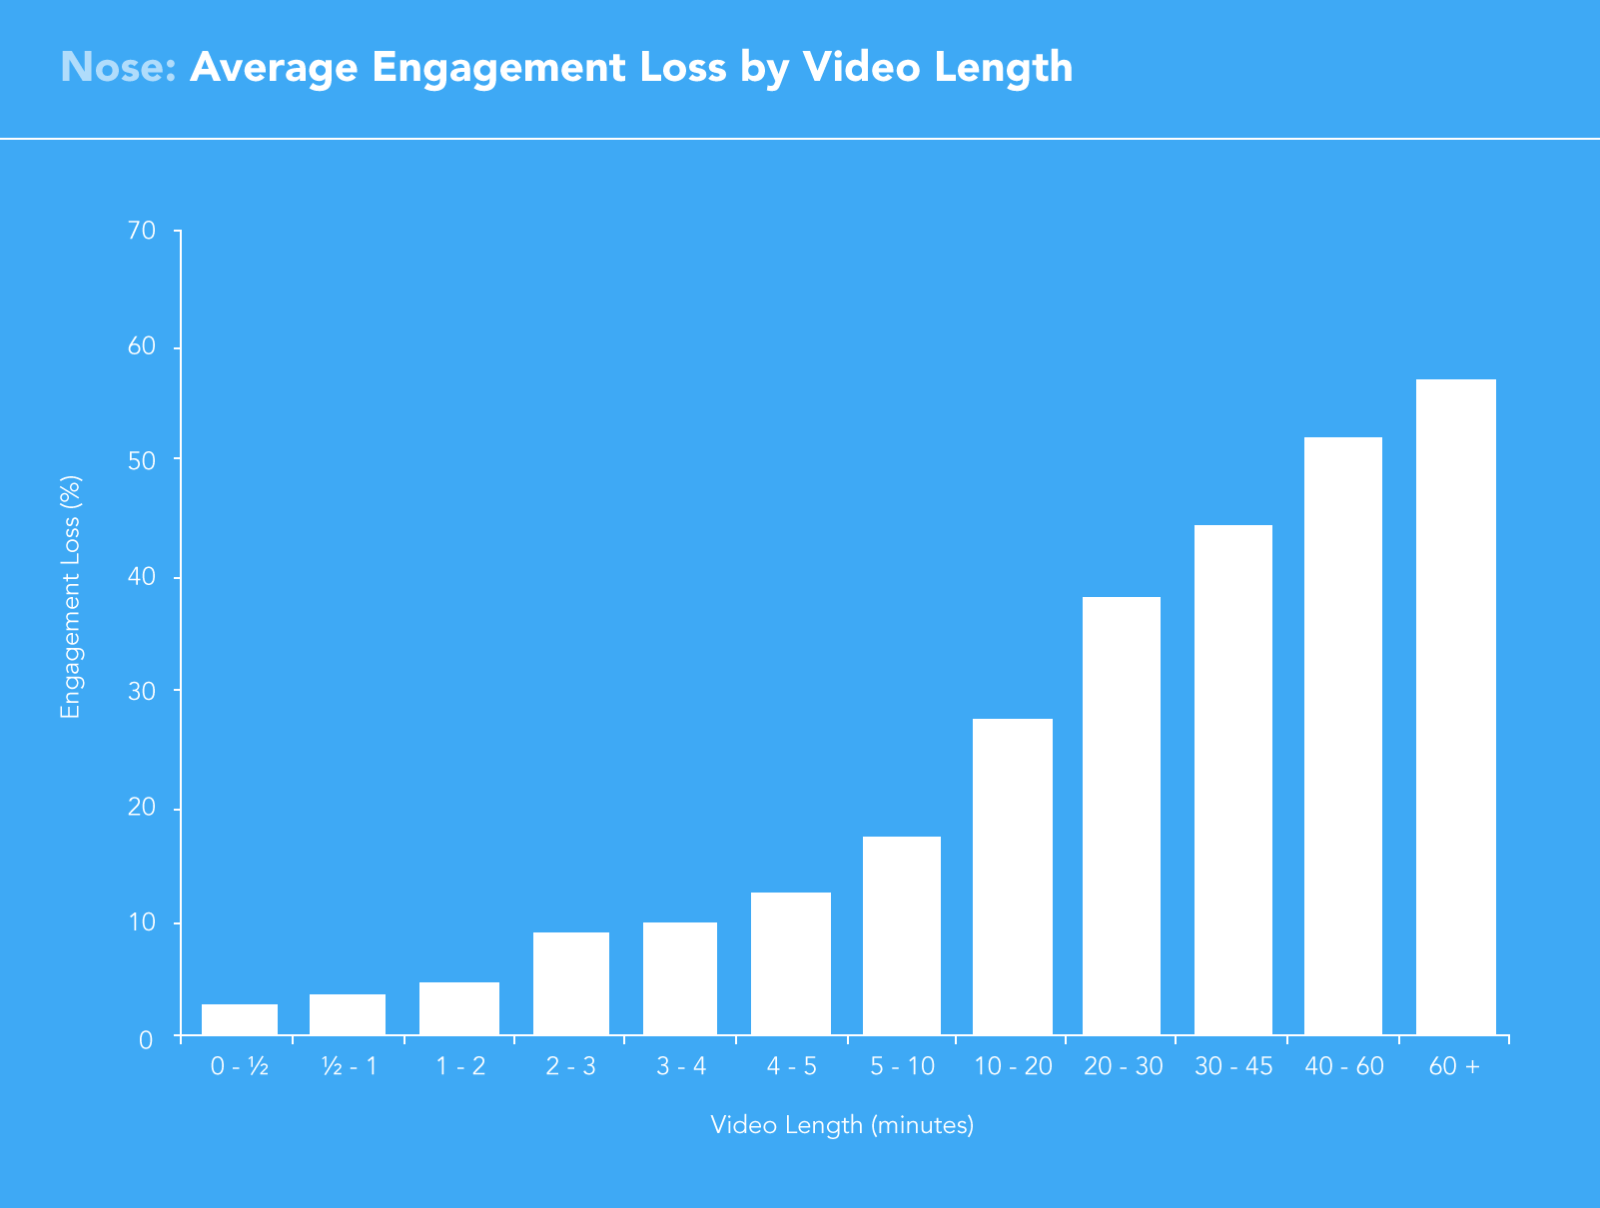 video engagement loss